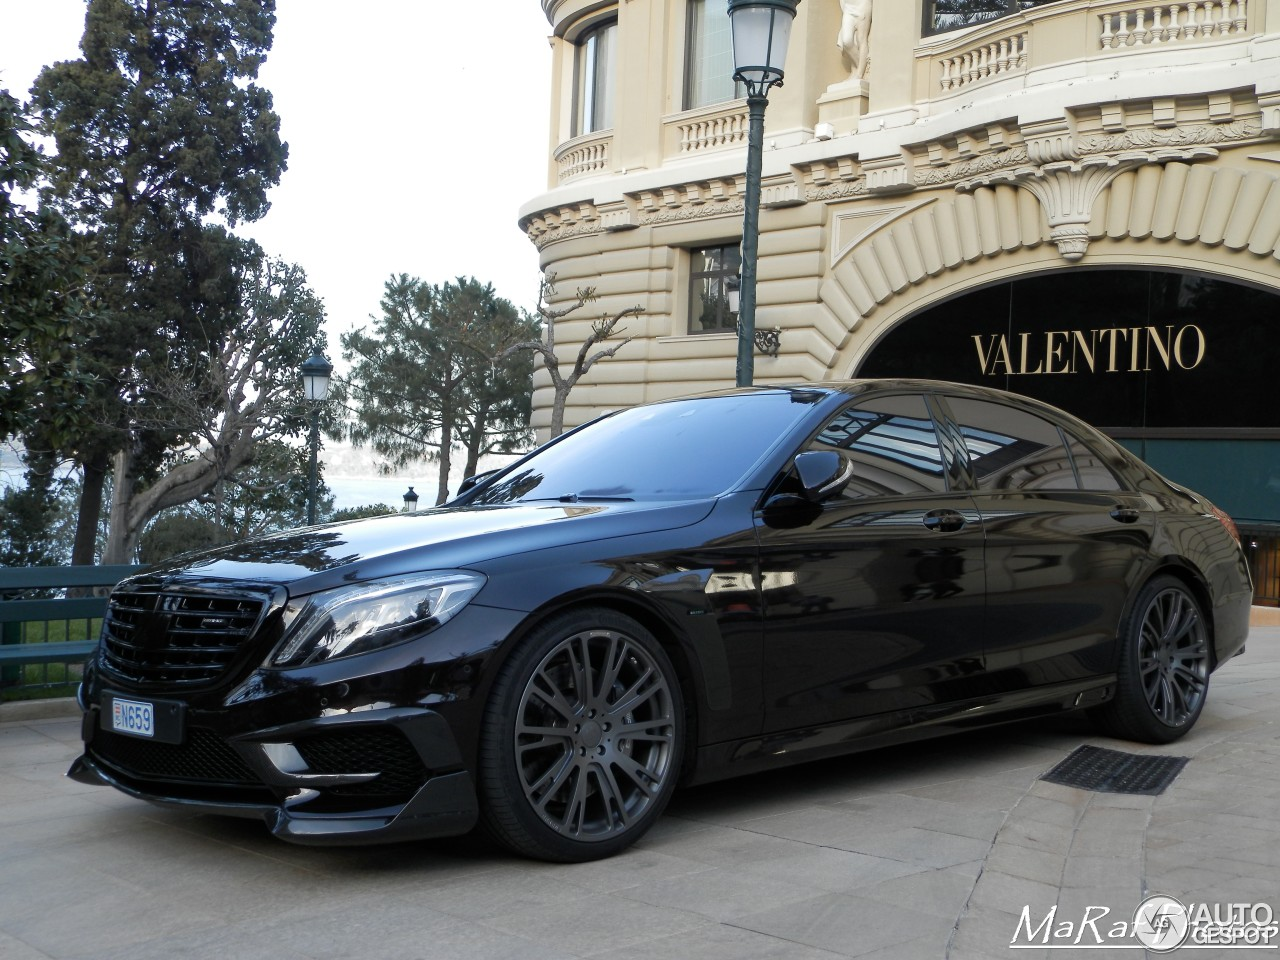 Mercedes Benz Brabus S B63 650 V222 27 April 2016